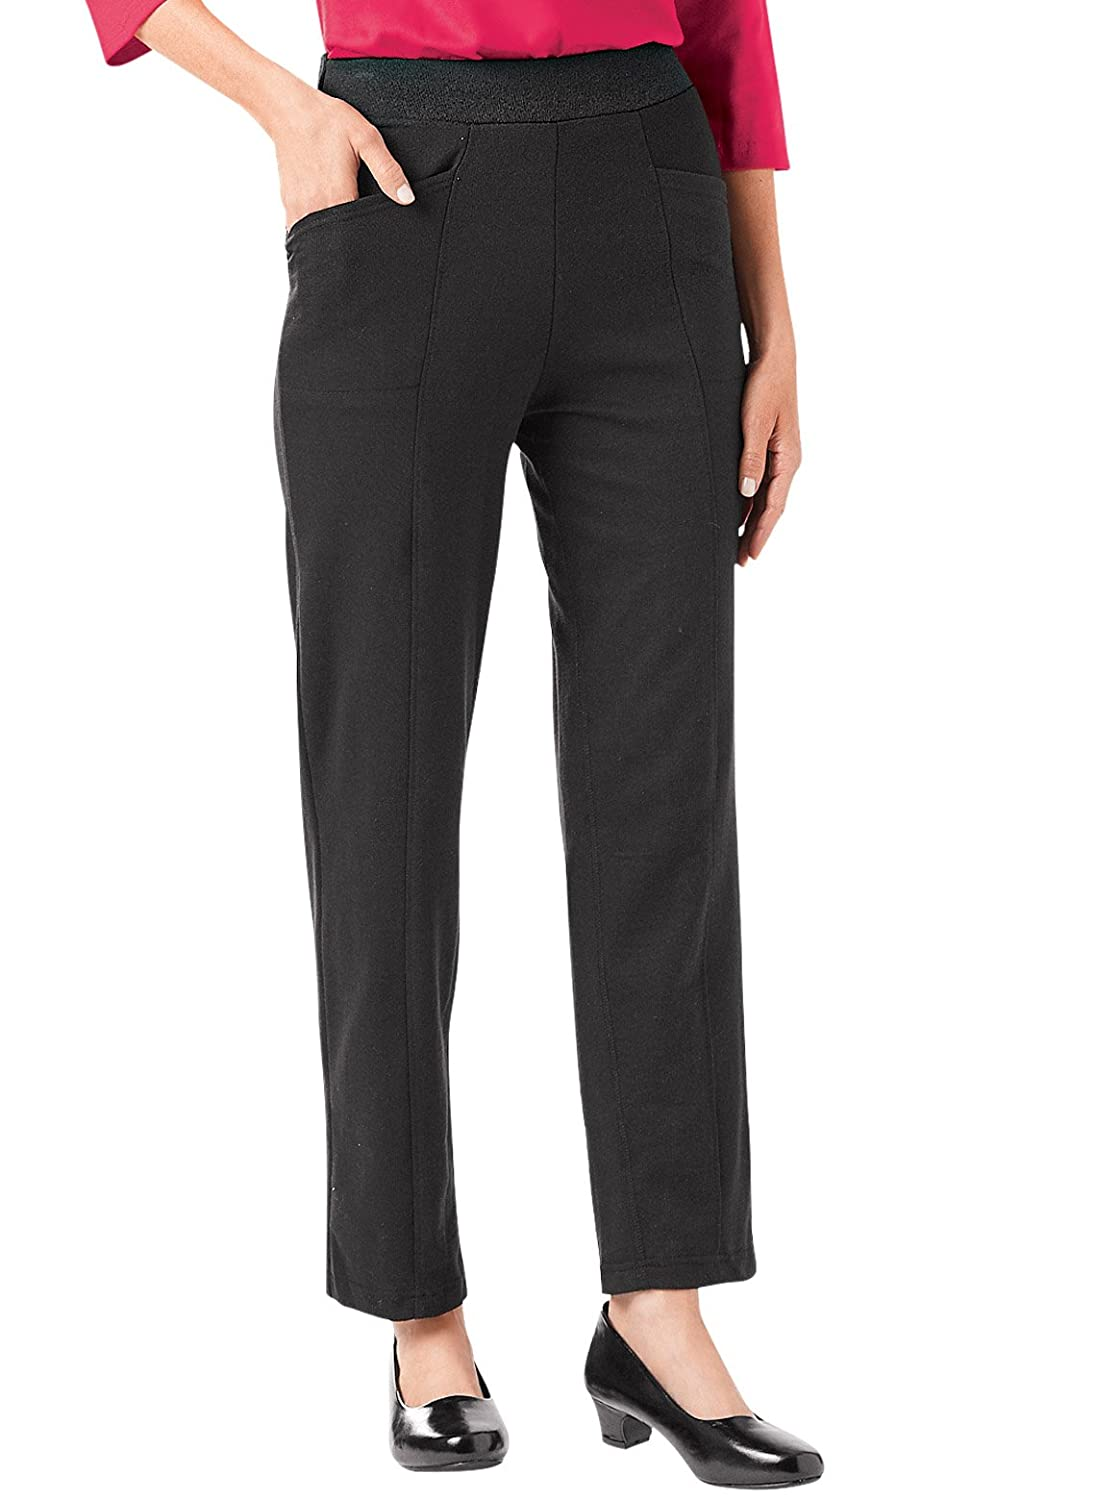 Carol Wright Gifts Ponte Pant by Carol Wright Gifts